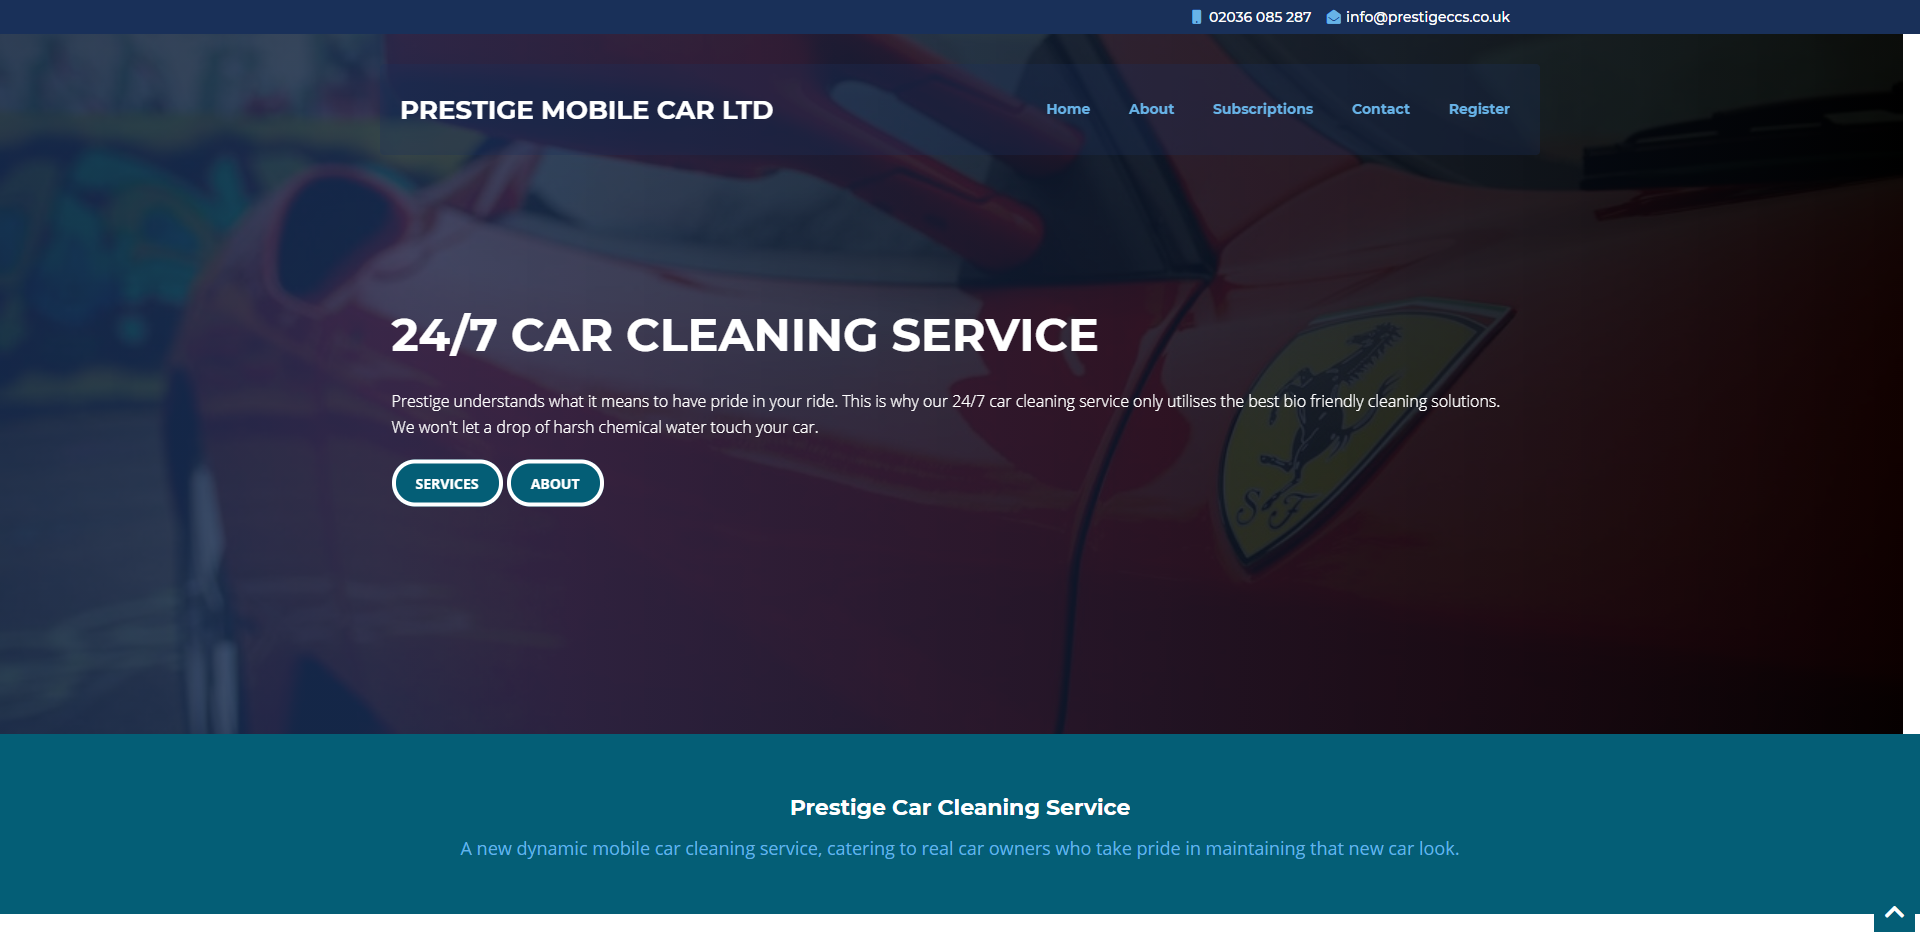 Prestige Car Cleaning Services